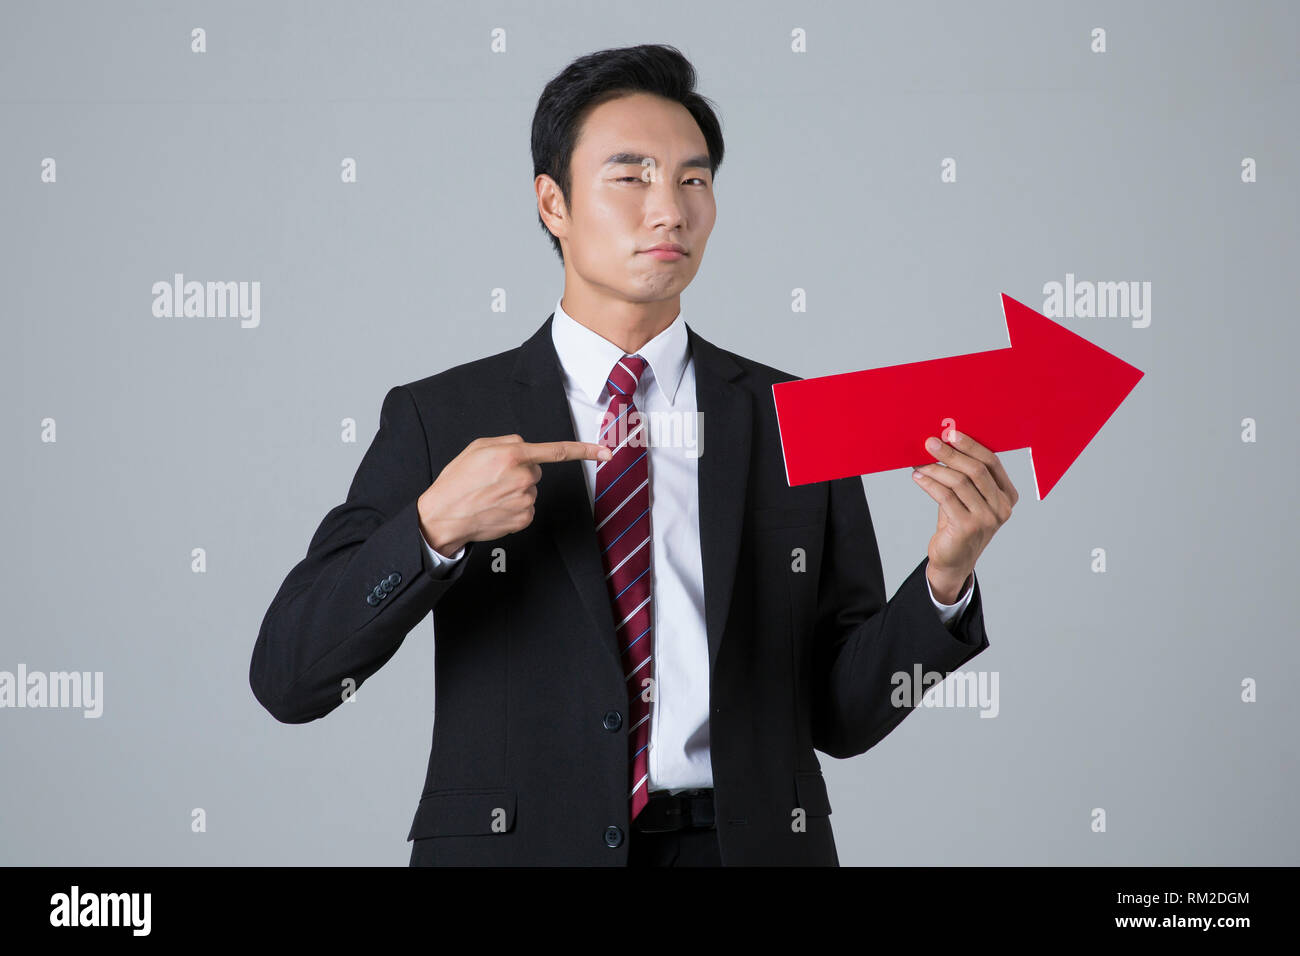 Young businessman concept photo. 031 - Stock Image